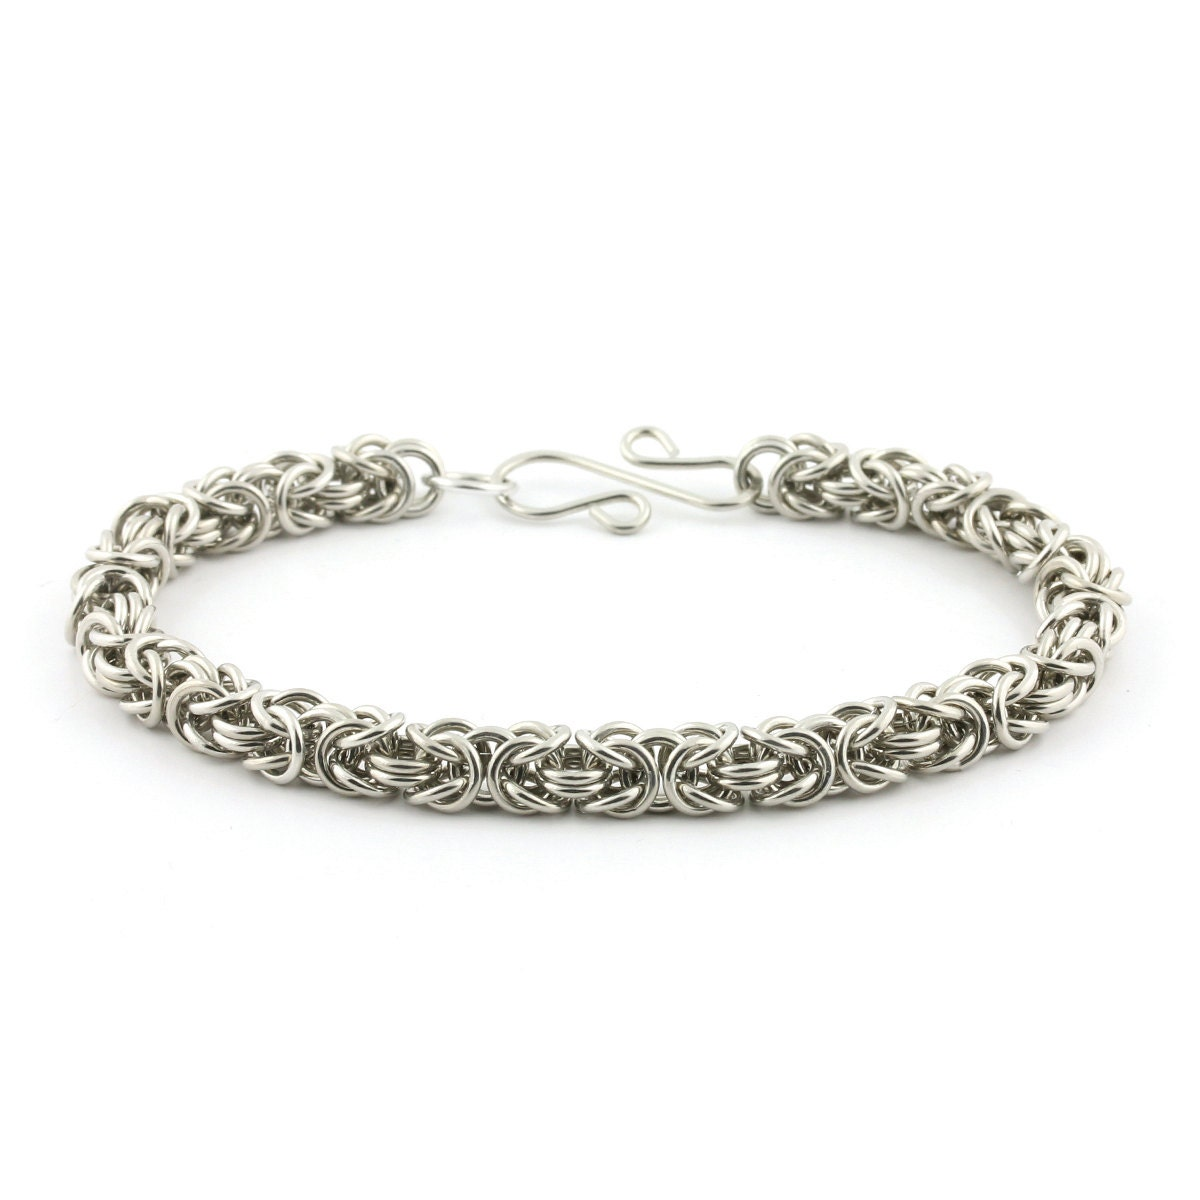 Free Chainmaille Bracelet Instructions